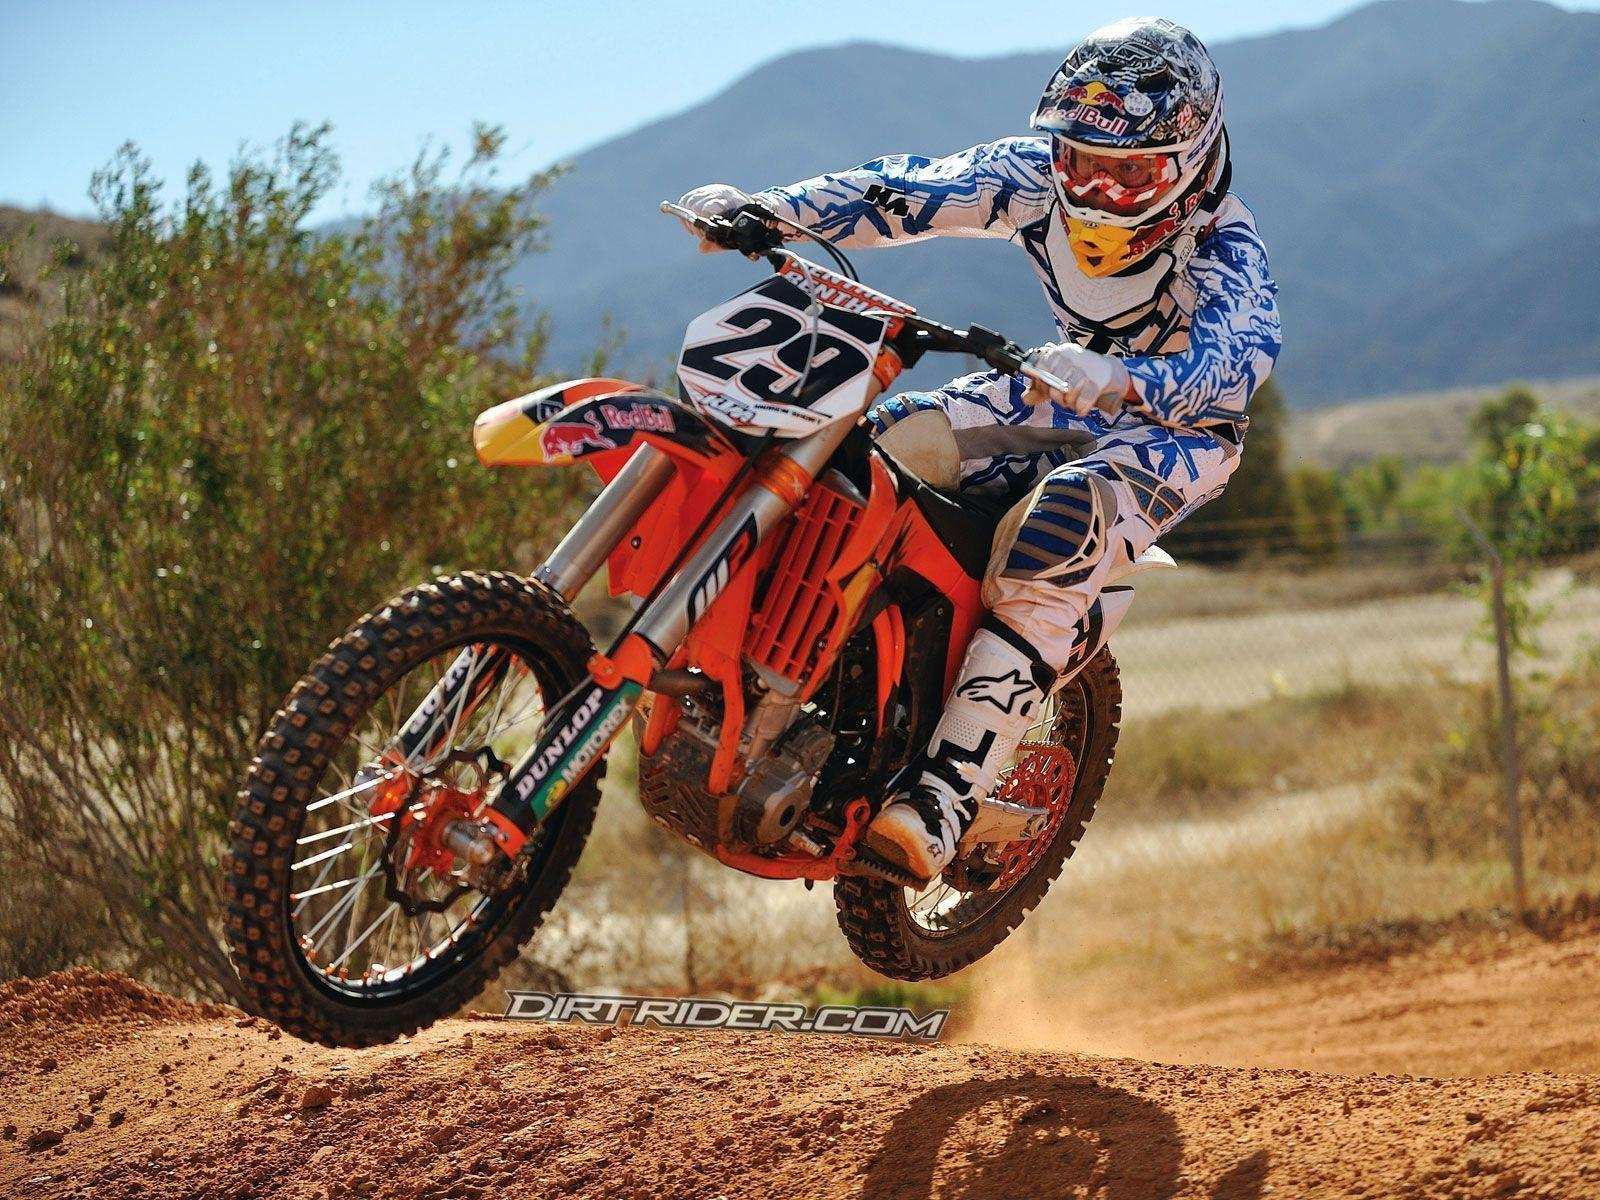 Home Cars Bikes Wallpapers Bikes Motorcycles Ktm 450 Sx Atv 2010 ...